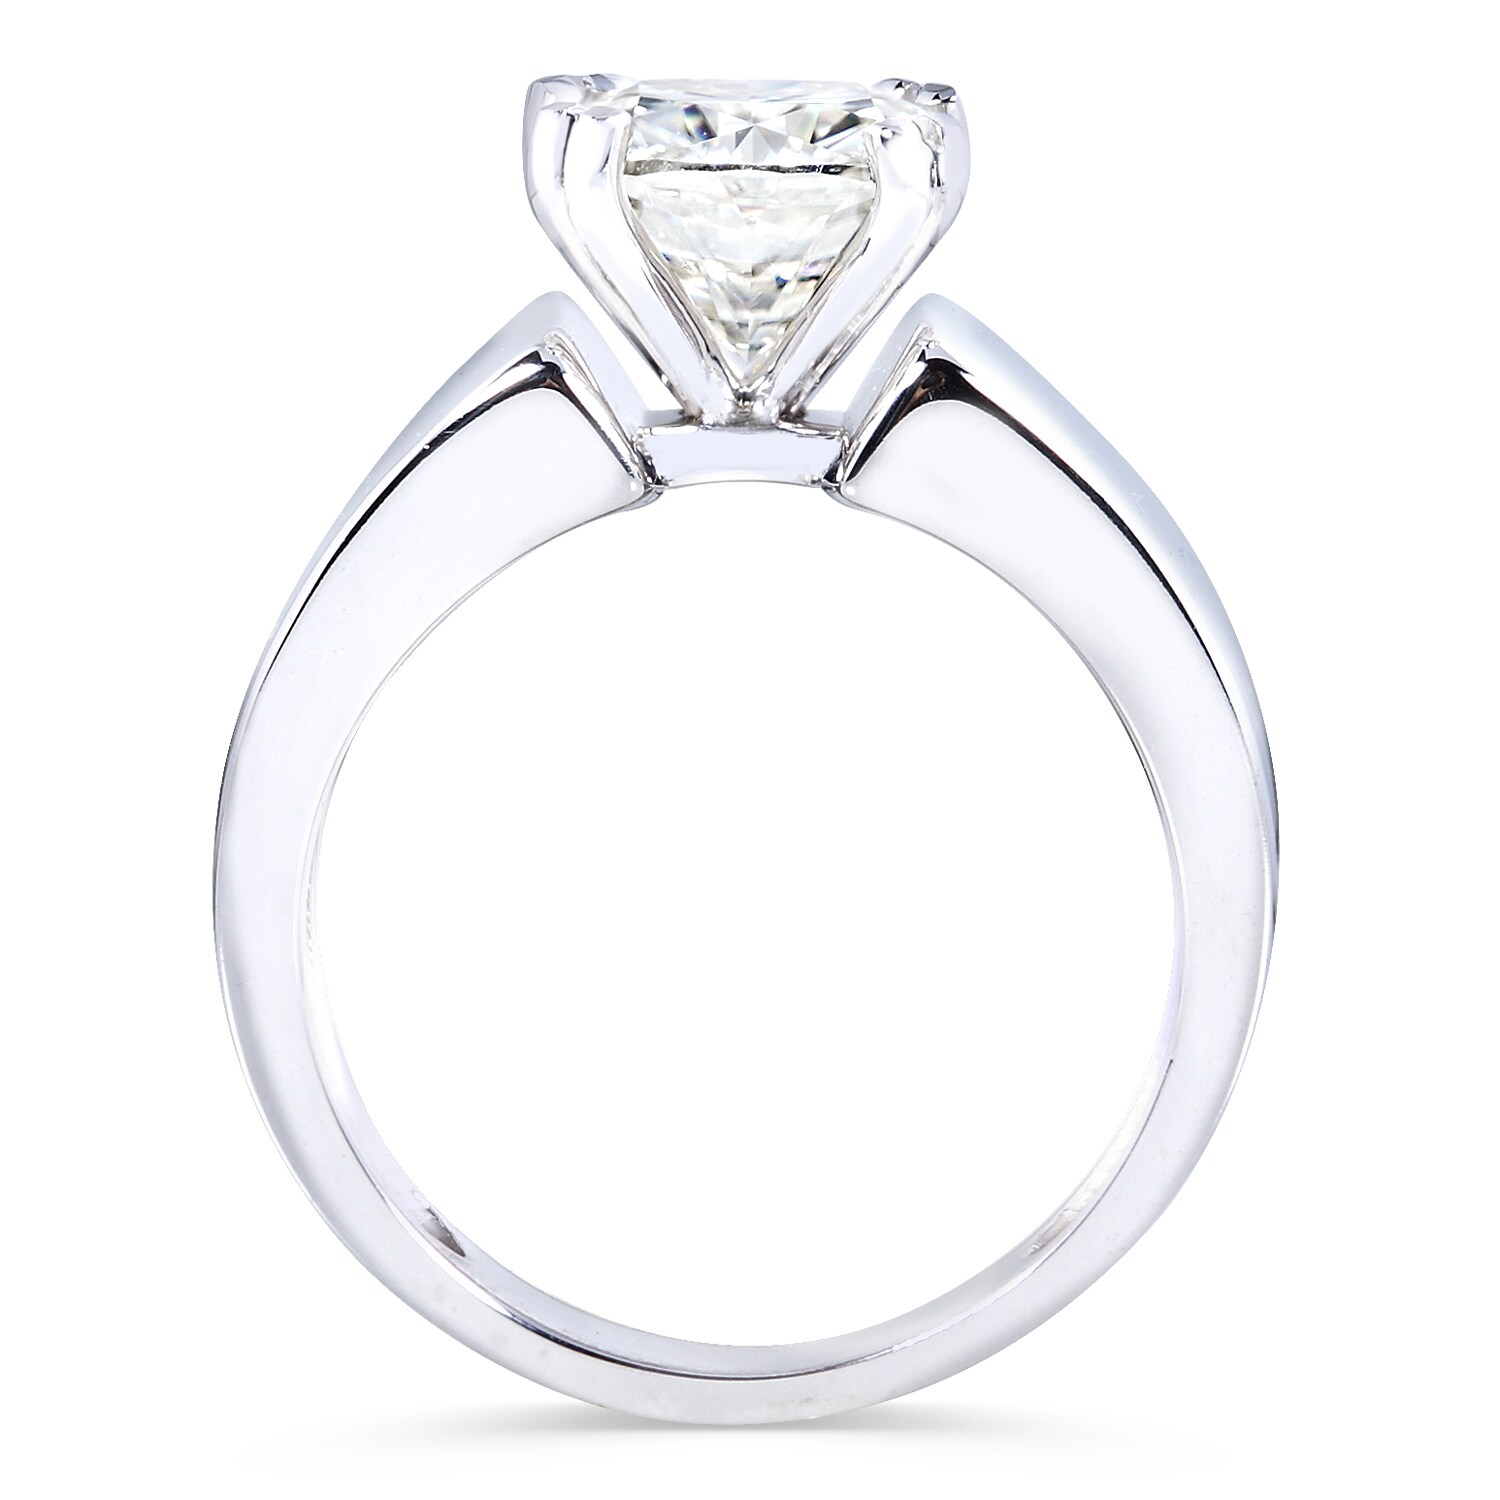 7a6555695 Shop Annello by Kobelli 14k White Gold 2ct Cushion Moissanite Solitaire  4-prong Wide Flare Band Engagement Ring - On Sale - Free Shipping Today -  Overstock ...